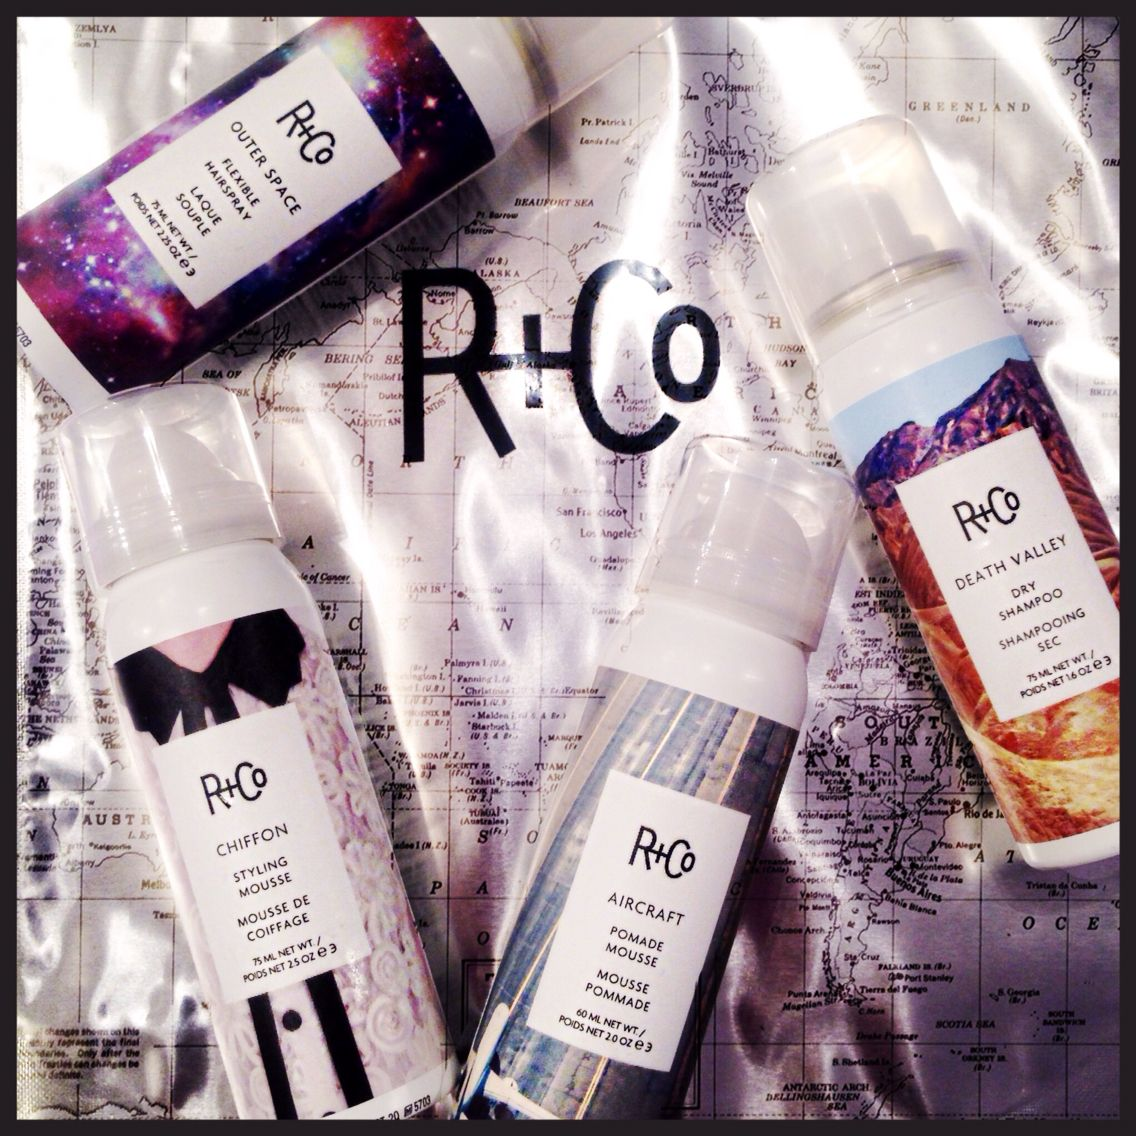 Traveling Over The Holiday Season Try Our R Co Travel Sizes Tsa Friendly Don T Leave Home Without Them Freshairsalo R And Co Travel Size Products R Co